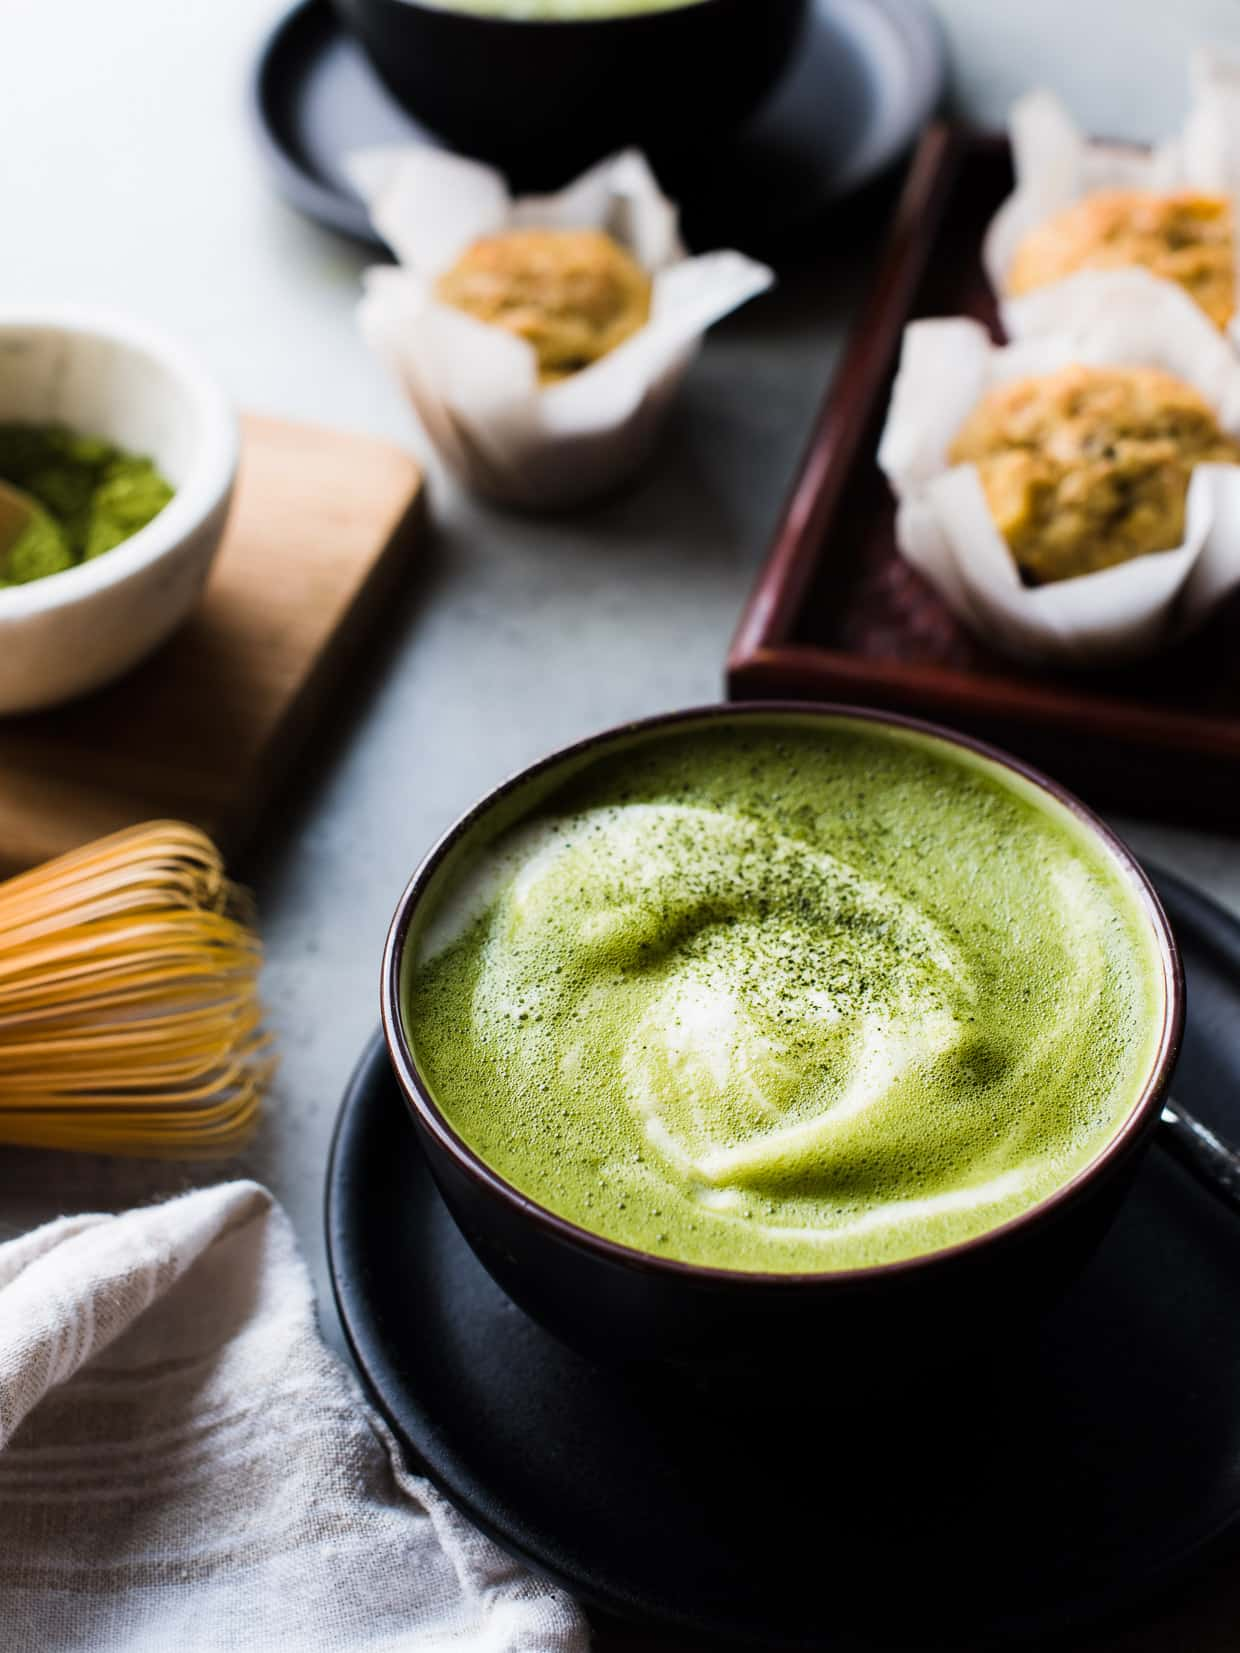 When you need a warm mug of cozy, make a matcha green tea latte. This latte is made dairy-free with almond milk and sweetened lightly with maple syrup. #matcha #greentea #tea #latte #recipe #vegetarian #vegan